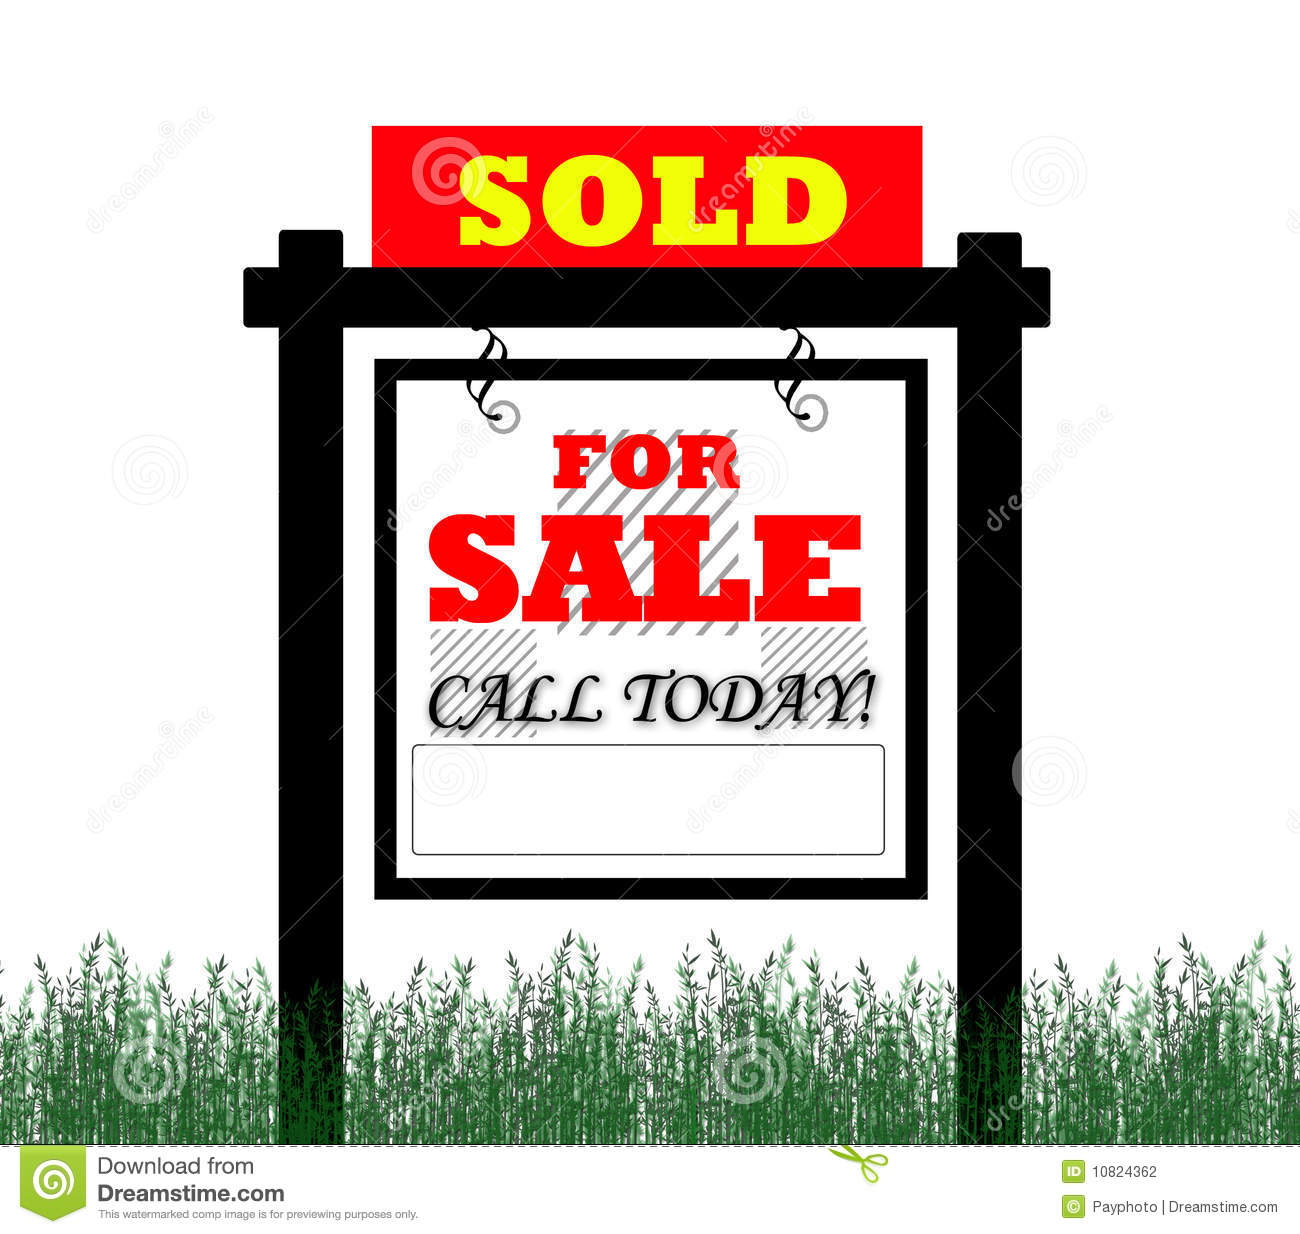 For Sale Sold Sign: Sold For Sale Real Estate Sign Stock Illustration